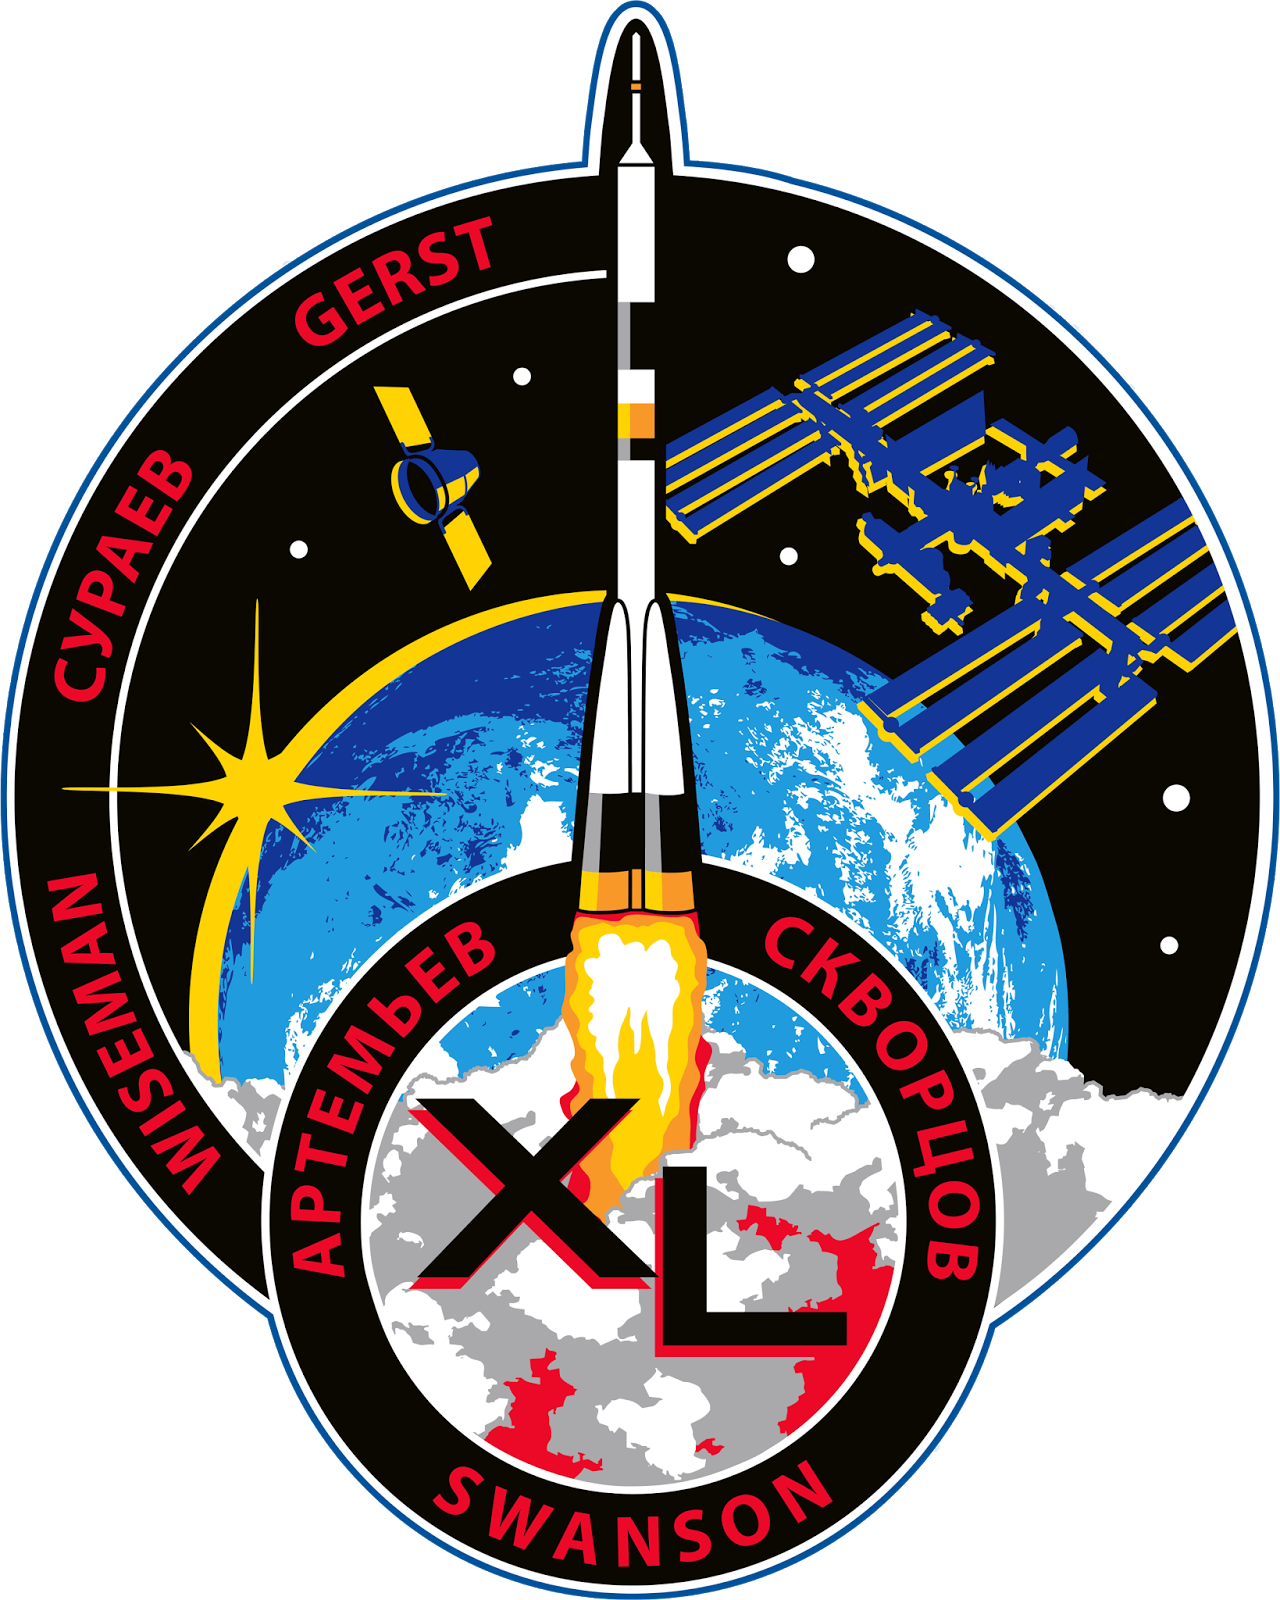 Mission Patches On Mission 4 To The International Space: Orbiter.ch Space News: 2014-05-25